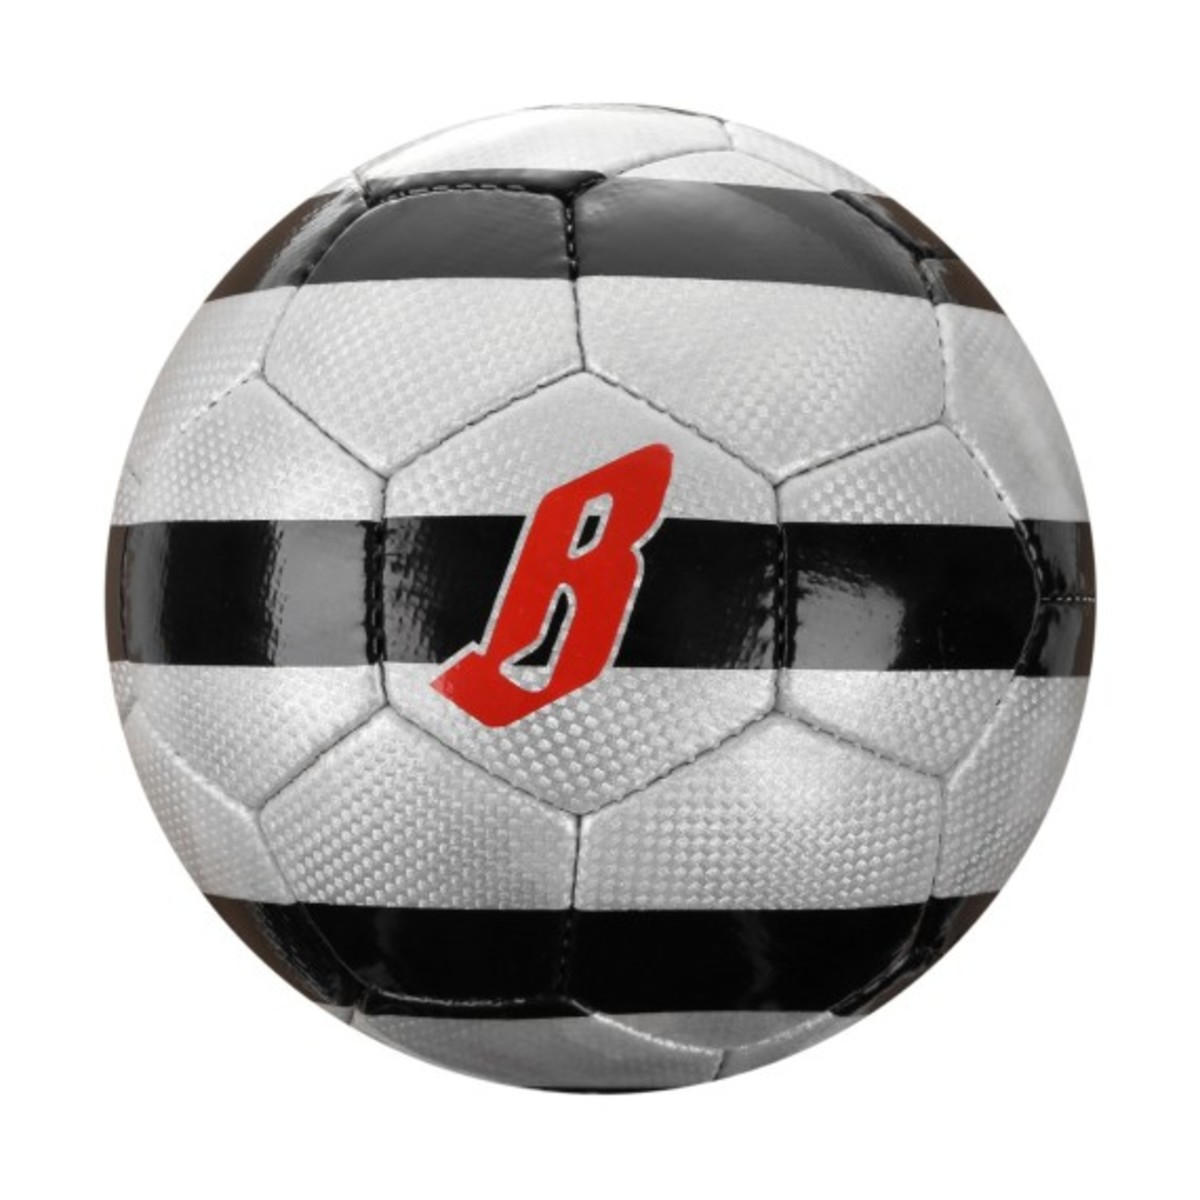 billionaire-boys-club-soccer-ball-02